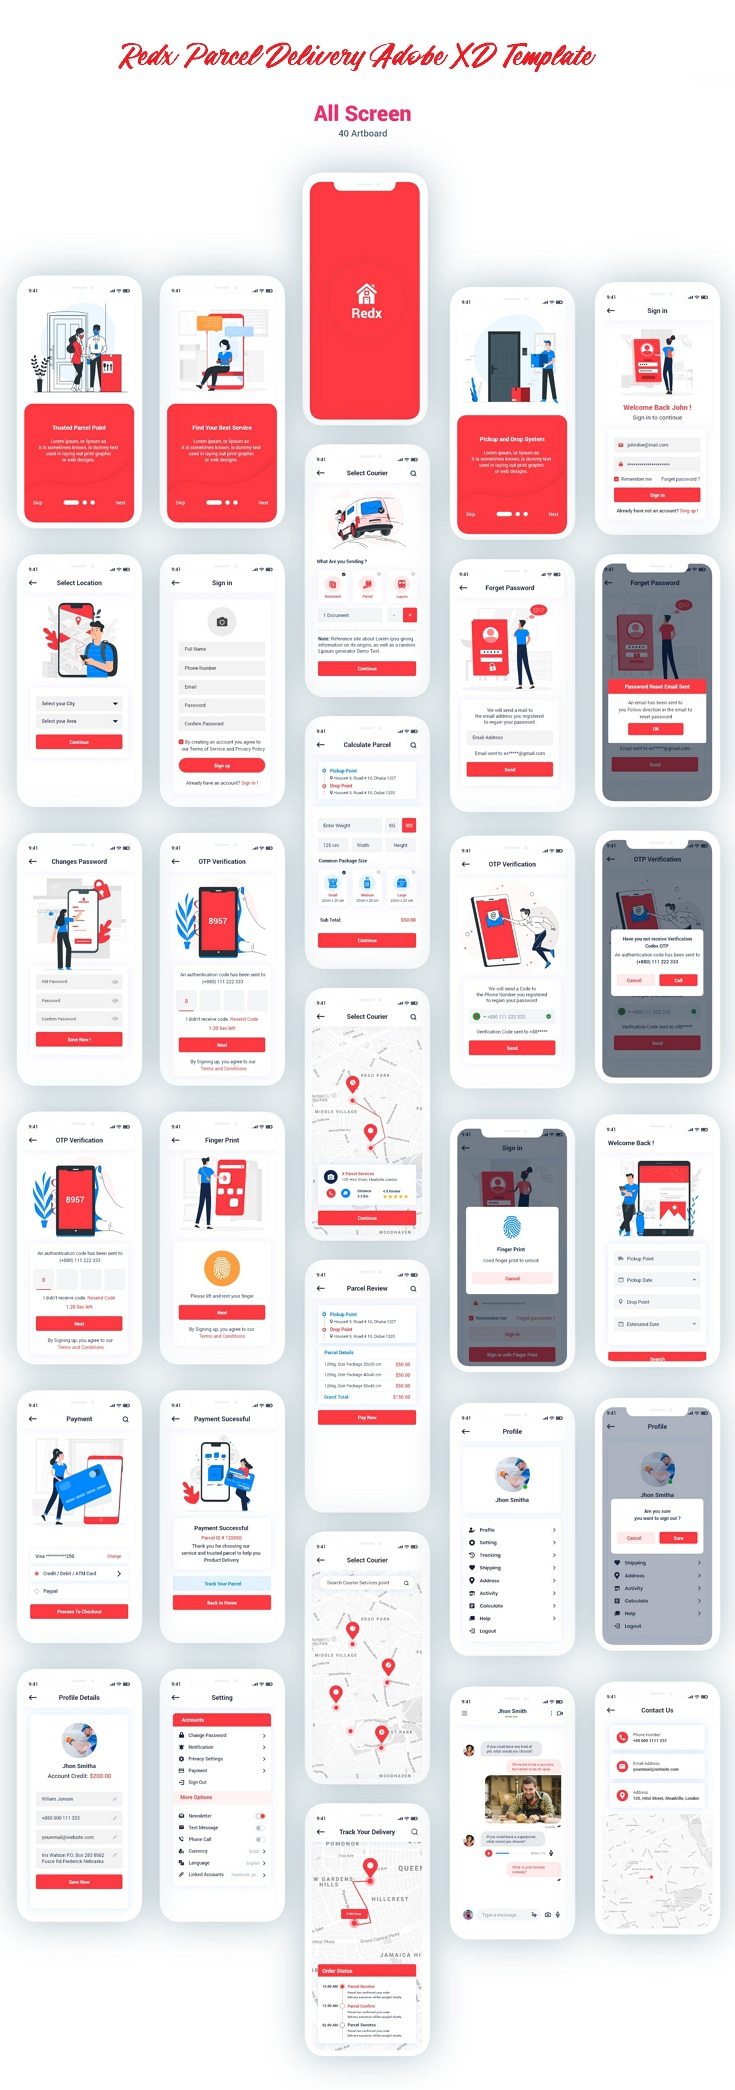 Parcel Delivery Adobe XD Template